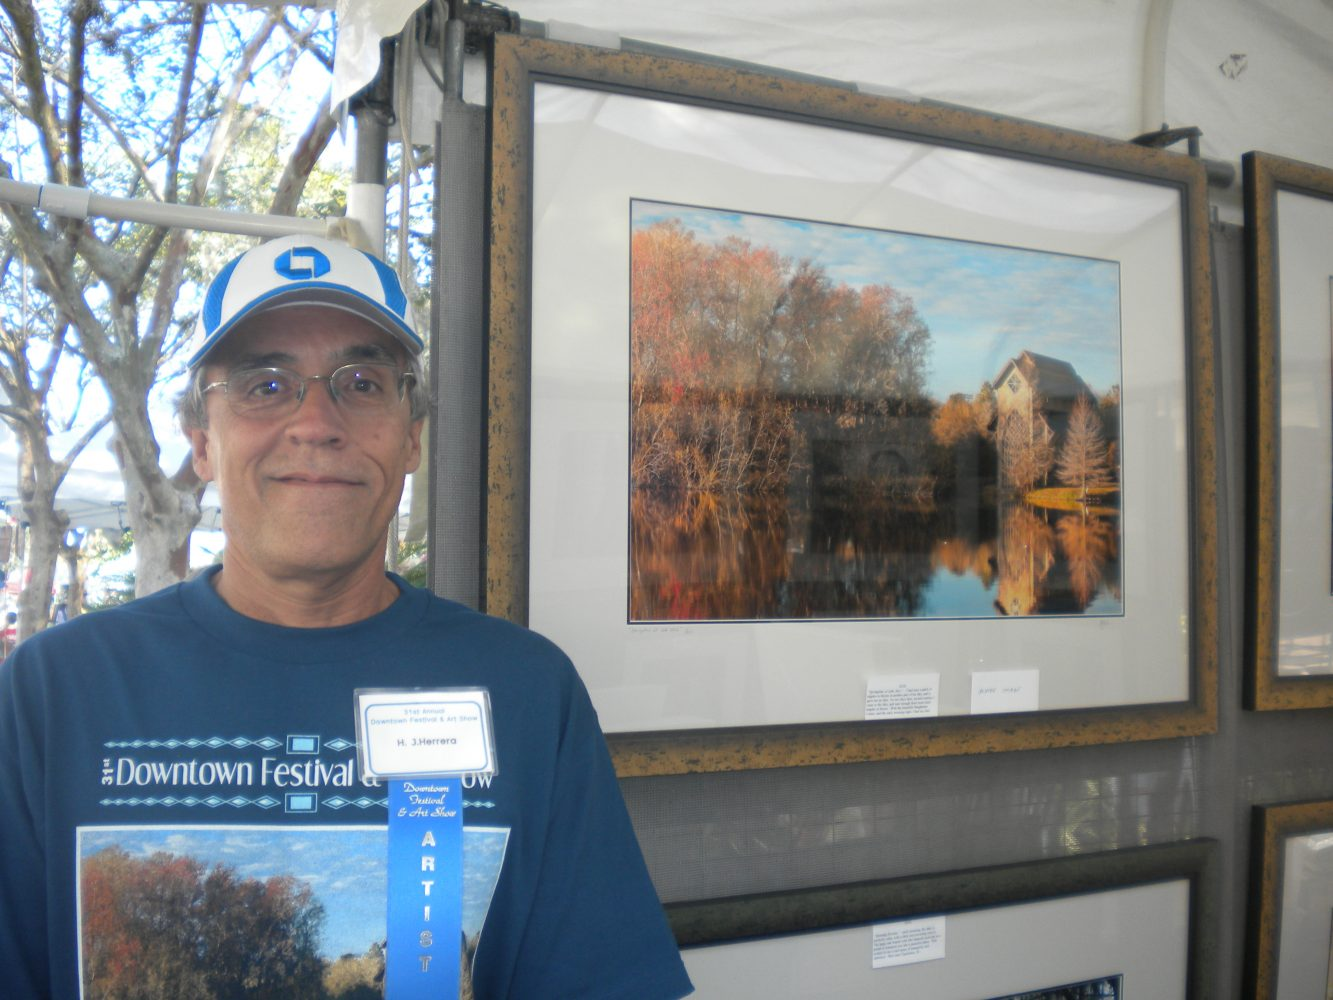 H.J. Herrera in front of the poster image for the 2012 Gainesville Festival & Art Show.